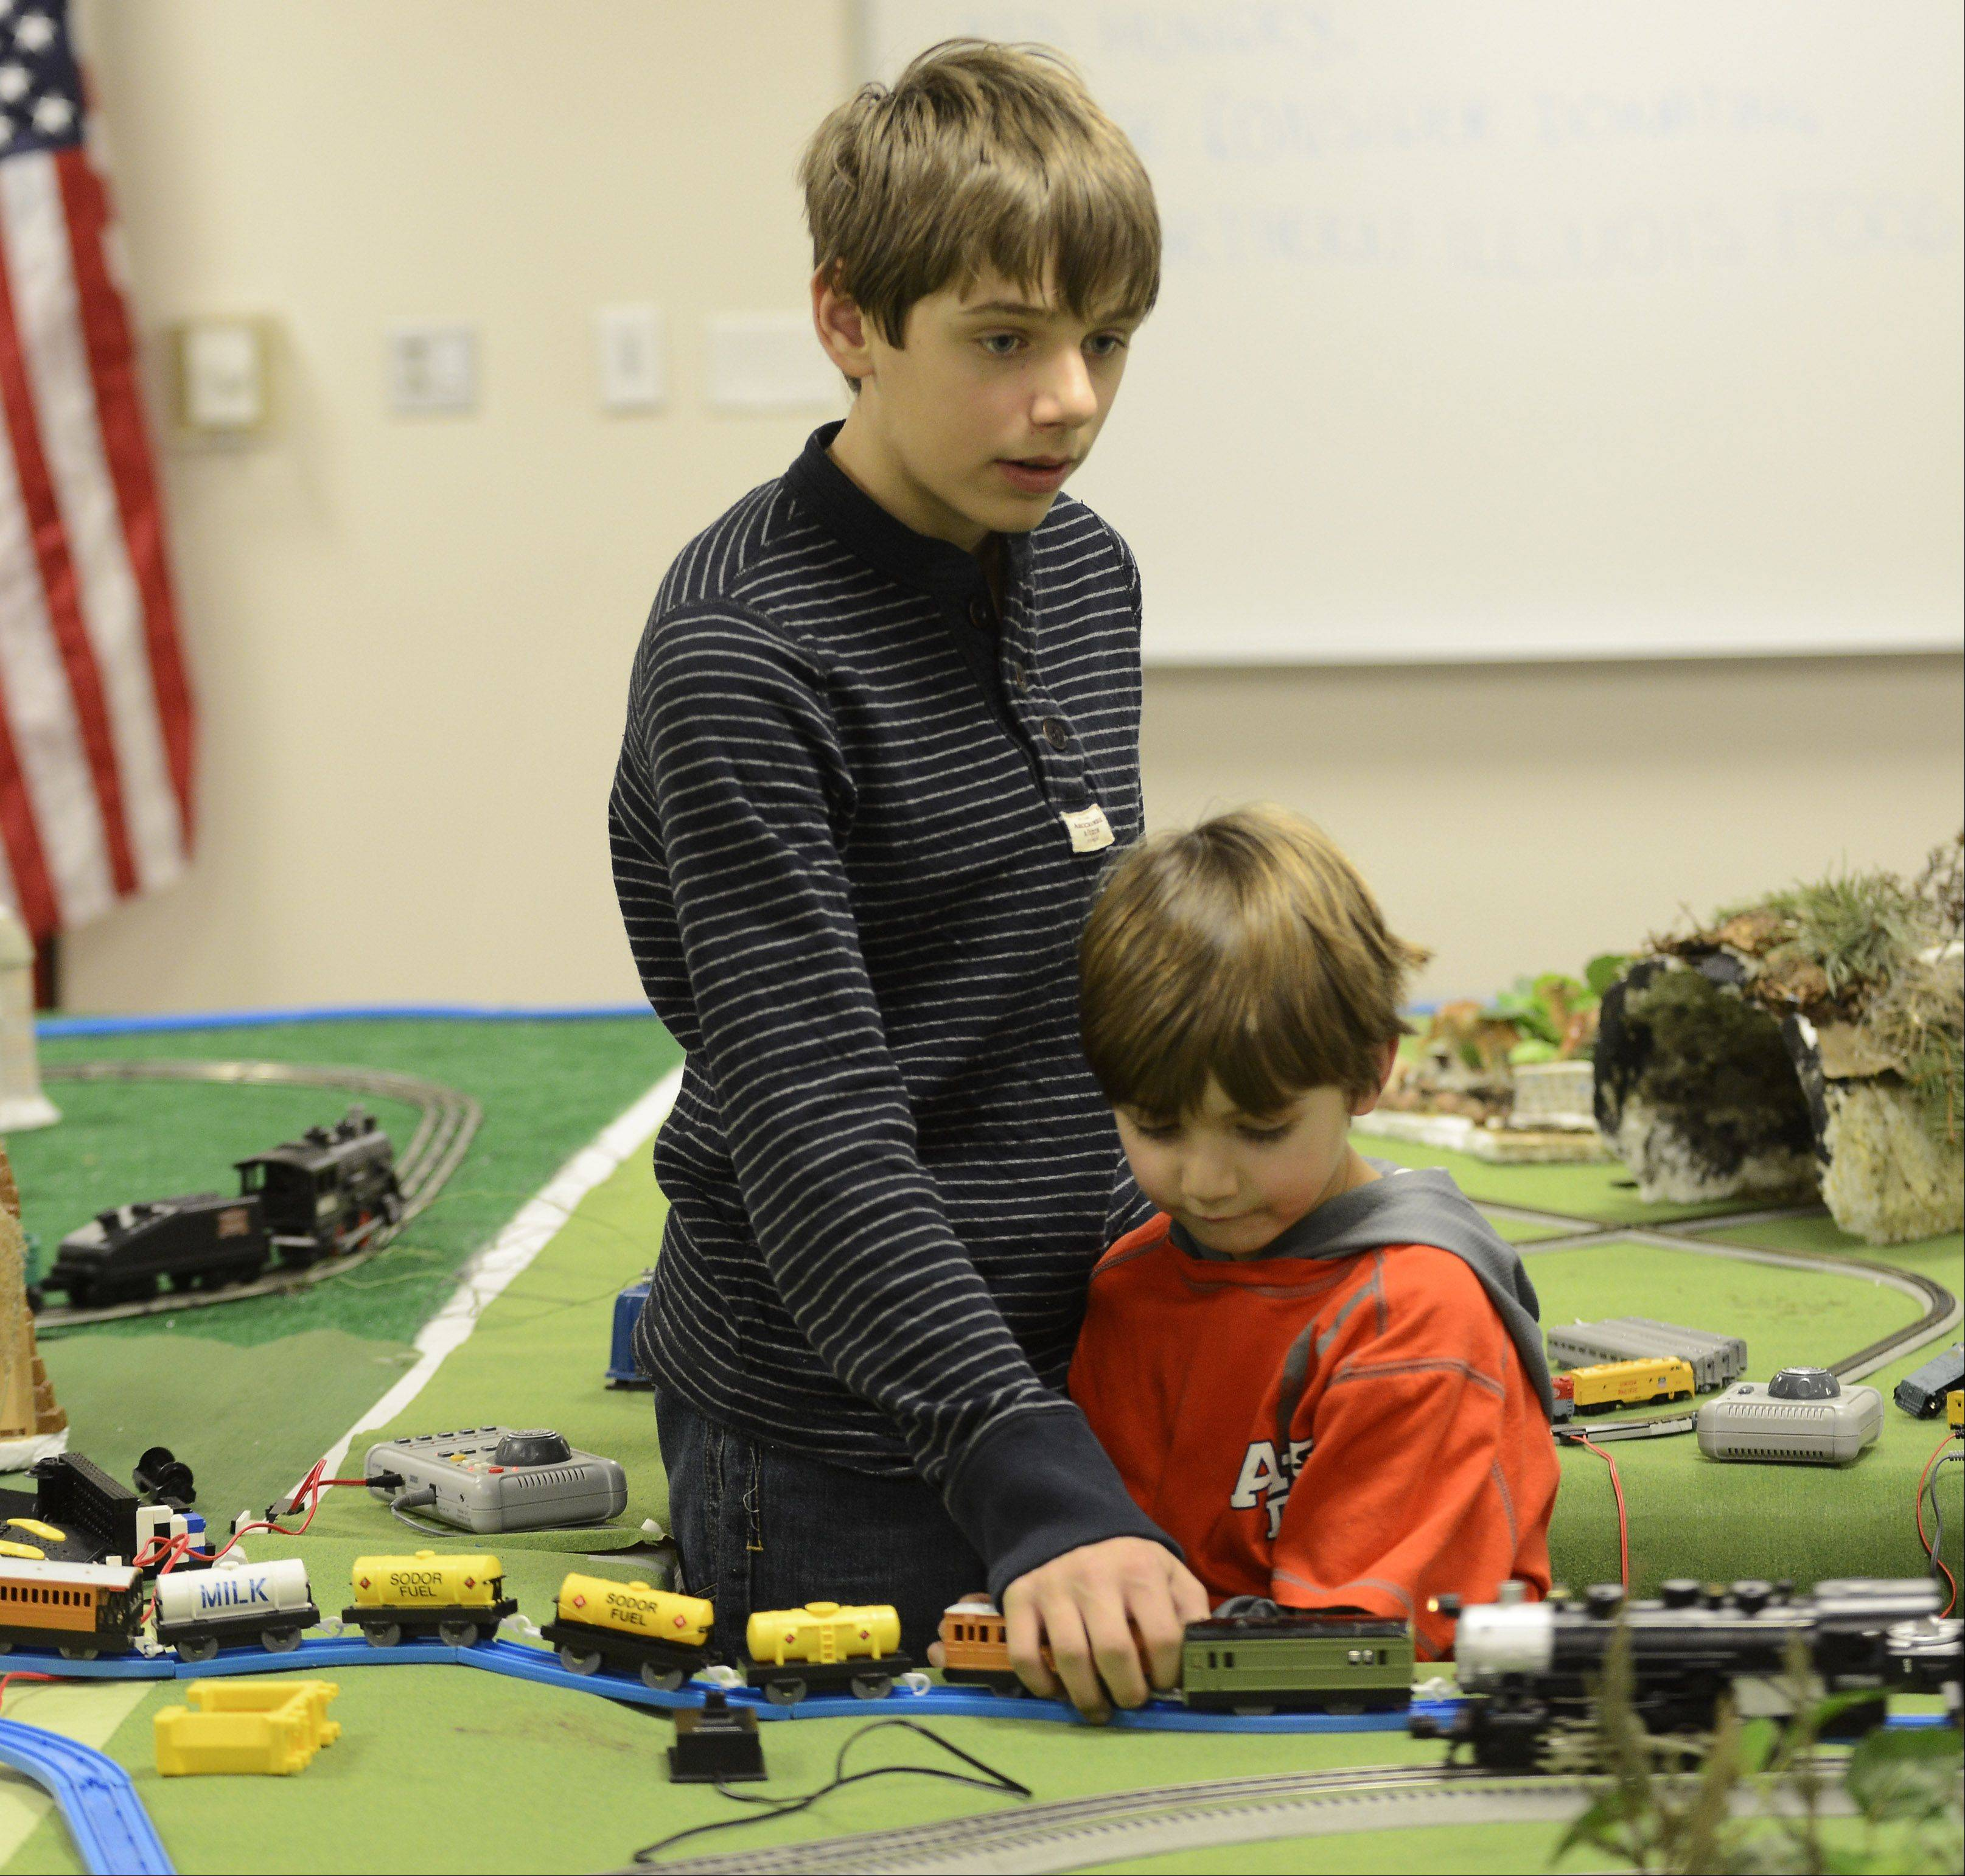 Omar Rasidagic, 12, of Grayslake, stands with his brother Hamza, 5, as he displays his multiple-scale train layout during the Winter Wishes on the Railway event at Cook Park Library in Libertyville Saturday. Nonperishable food items were collected as admission, and will be donated to the Lake County Food Pantry.